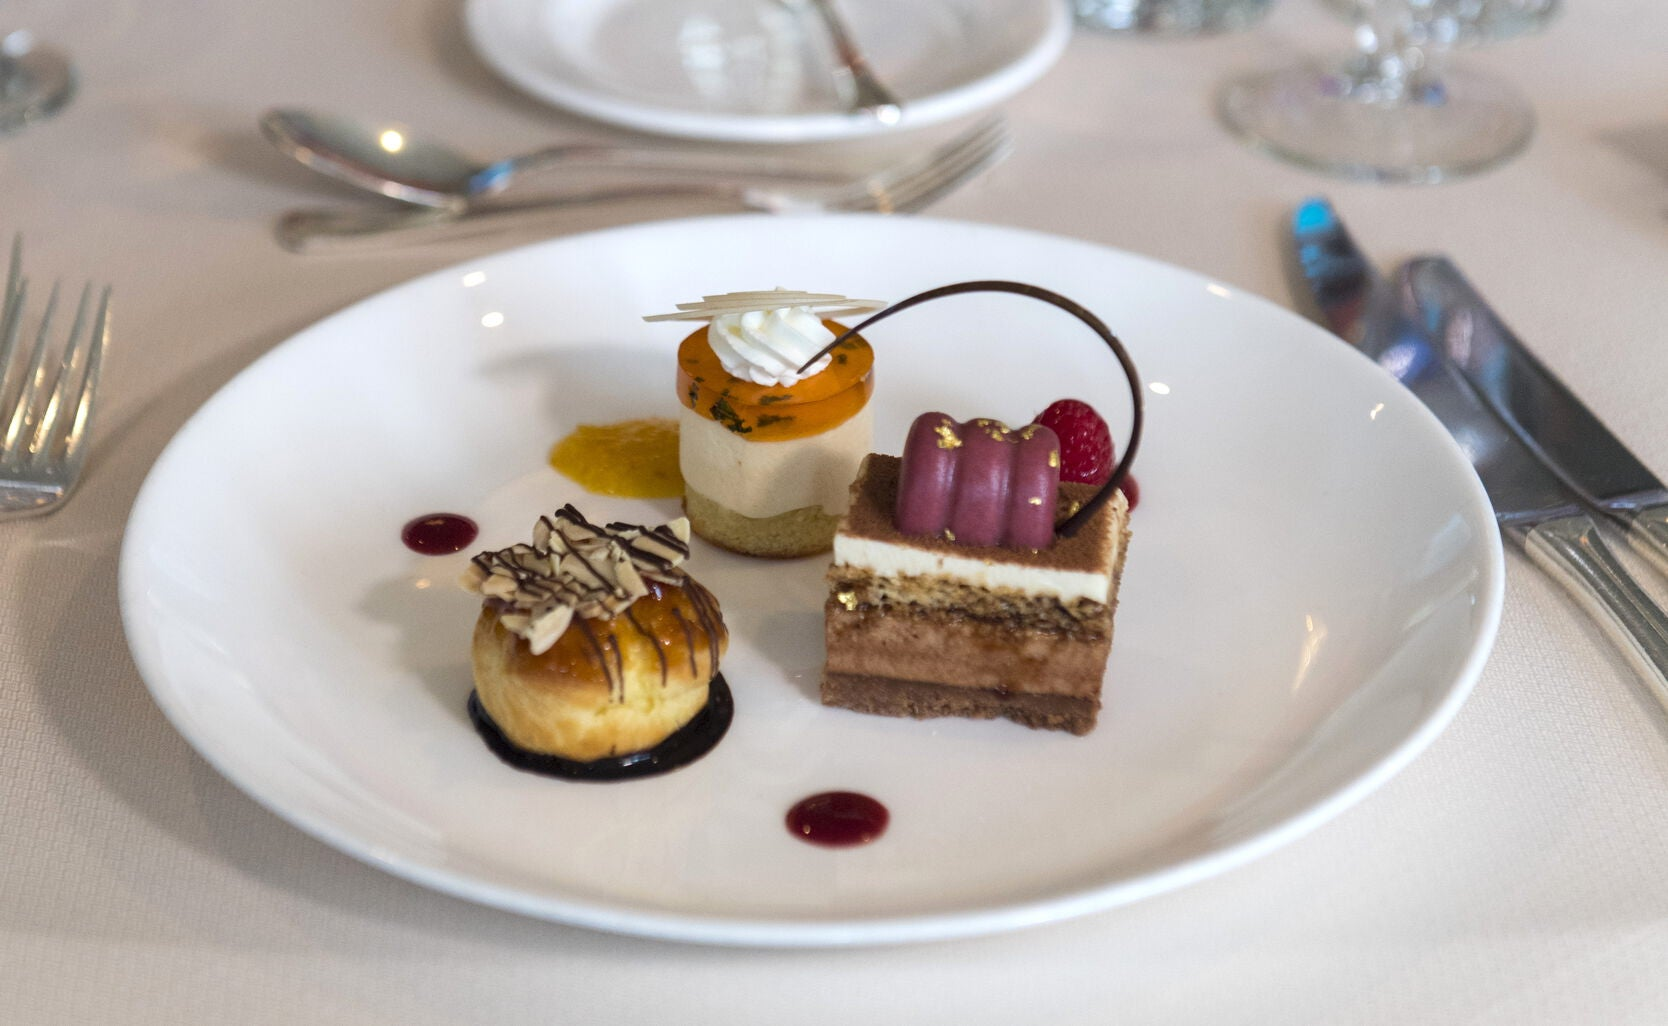 Creating the show-stopping dessert for his seventh consecutive year, Henzi prepared a trio including Neapolitan almond cake with orange mascarpone, profiteroles filled with amaretto vanilla cream, and chocolate gianduja crunch bars.